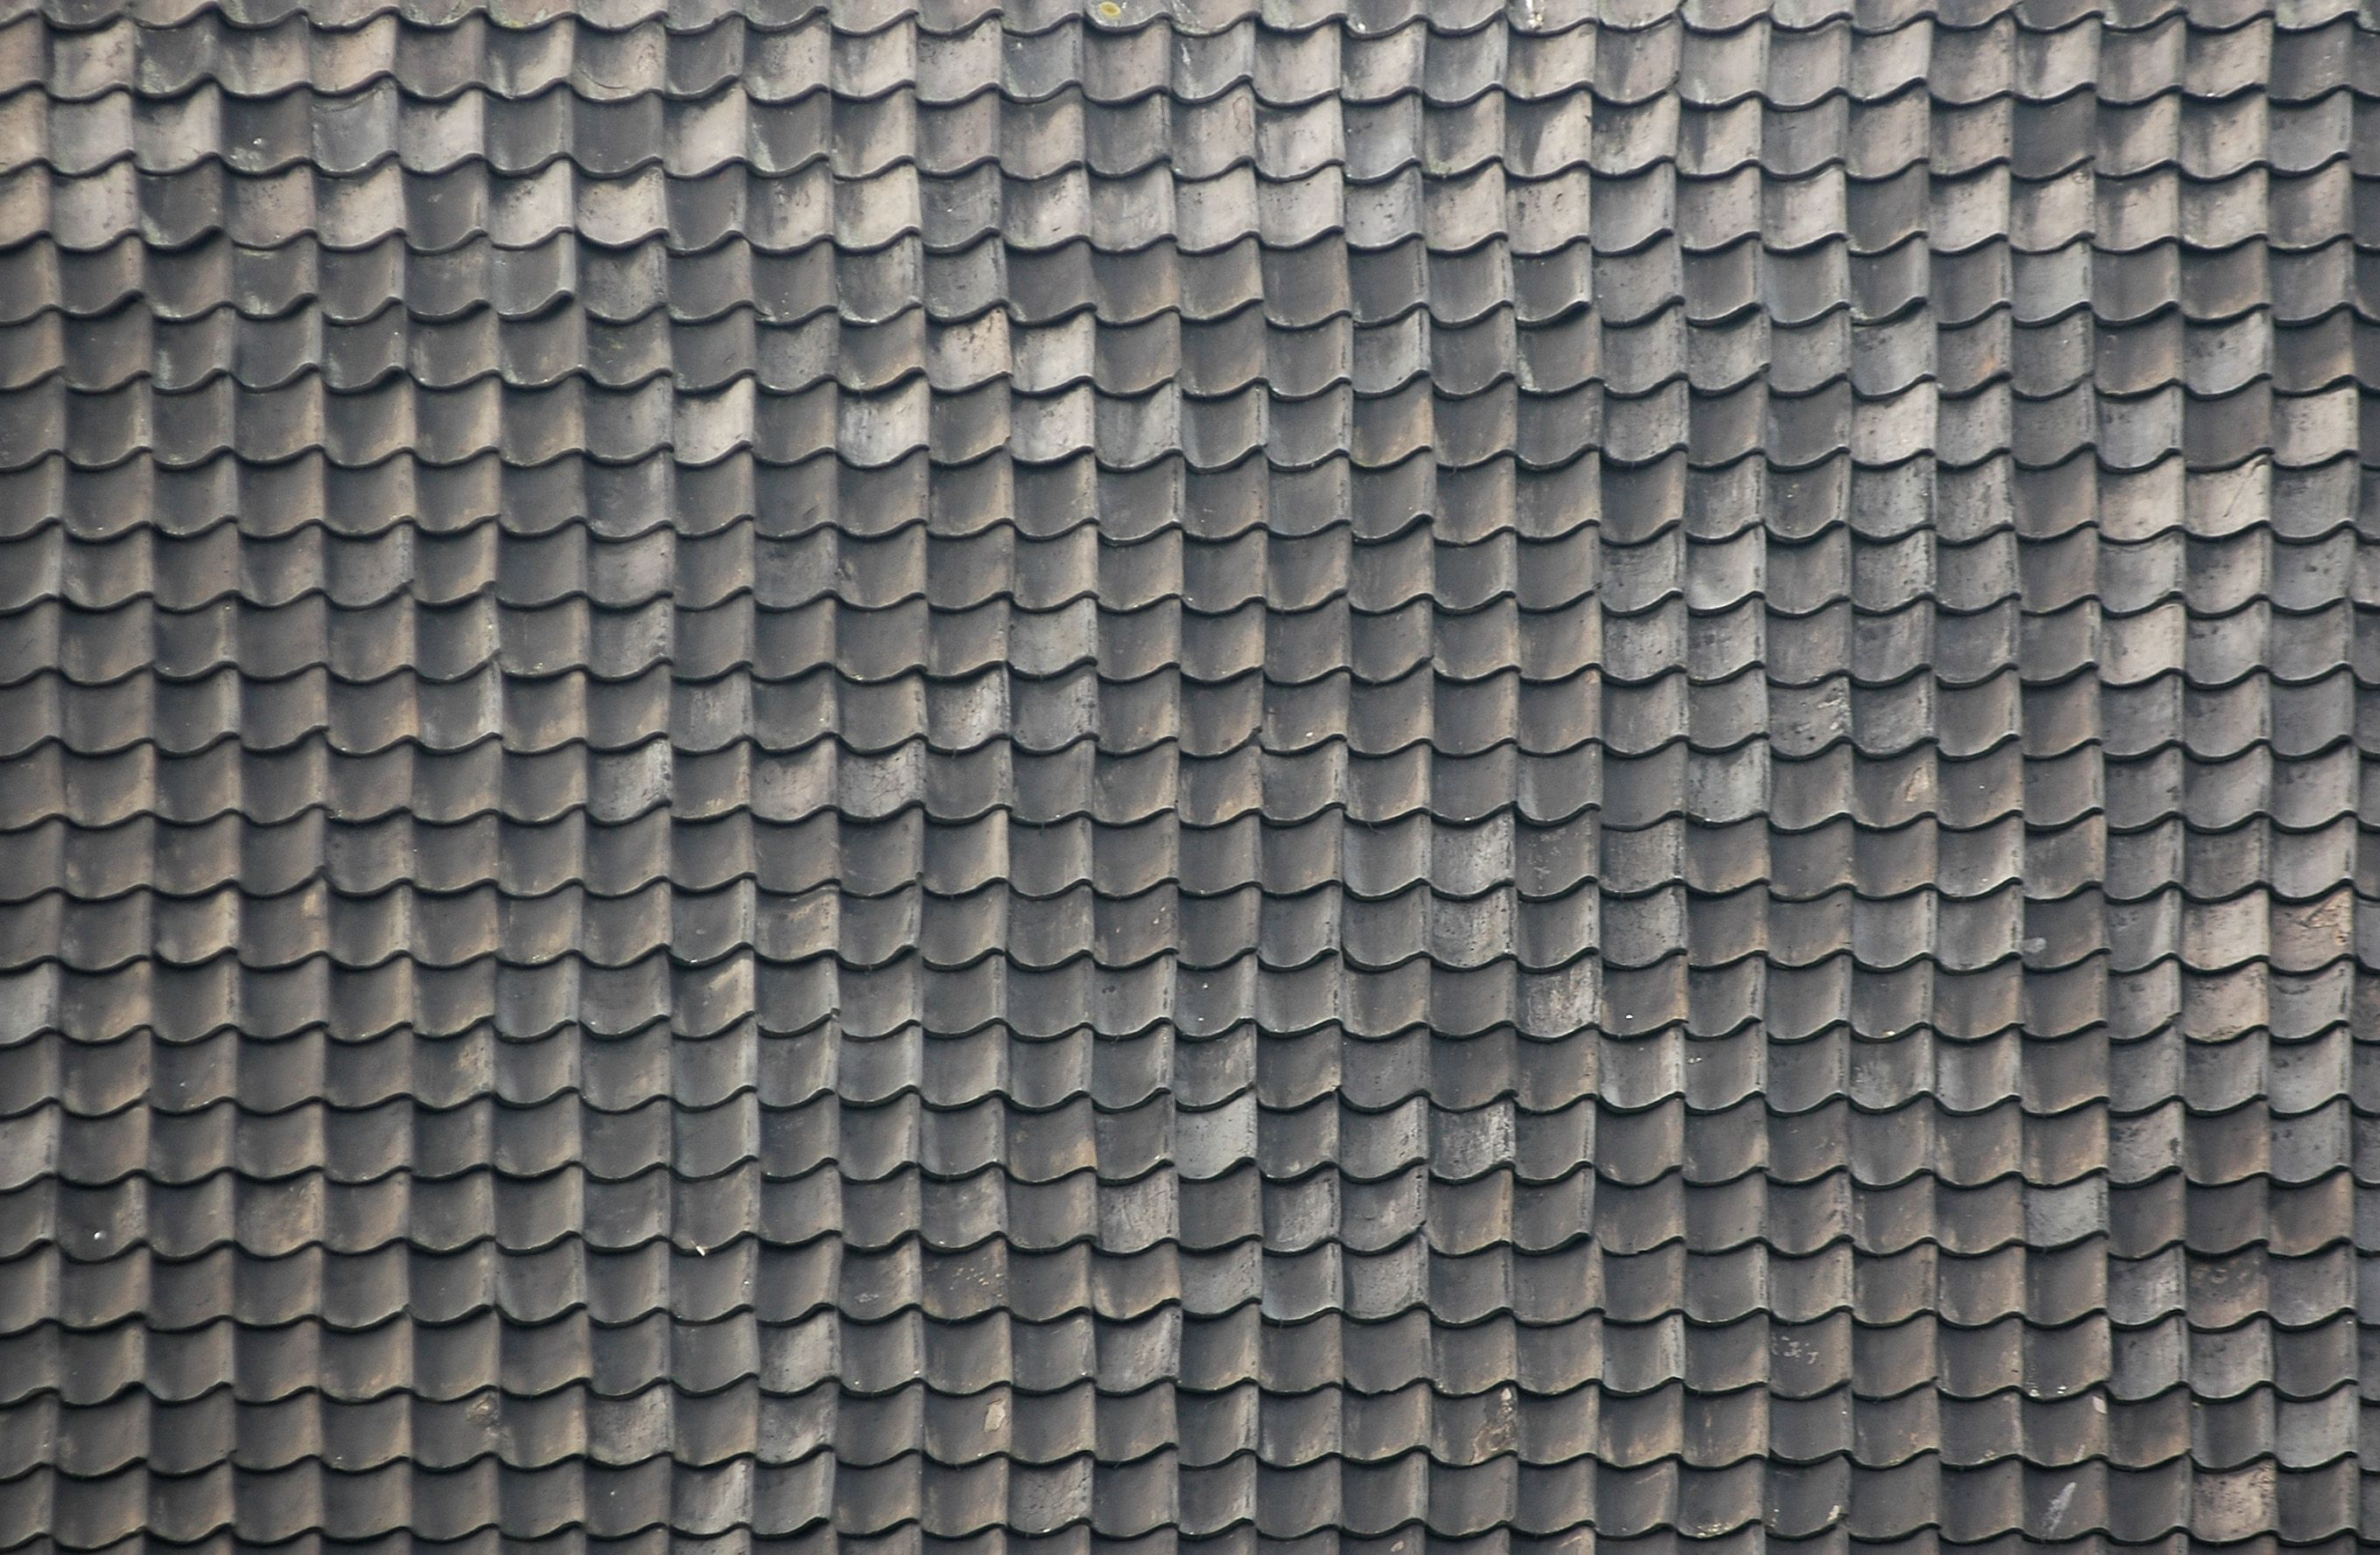 Pin By Zym On China Style Tiles Texture Roof Tiles Types Roof Tiles